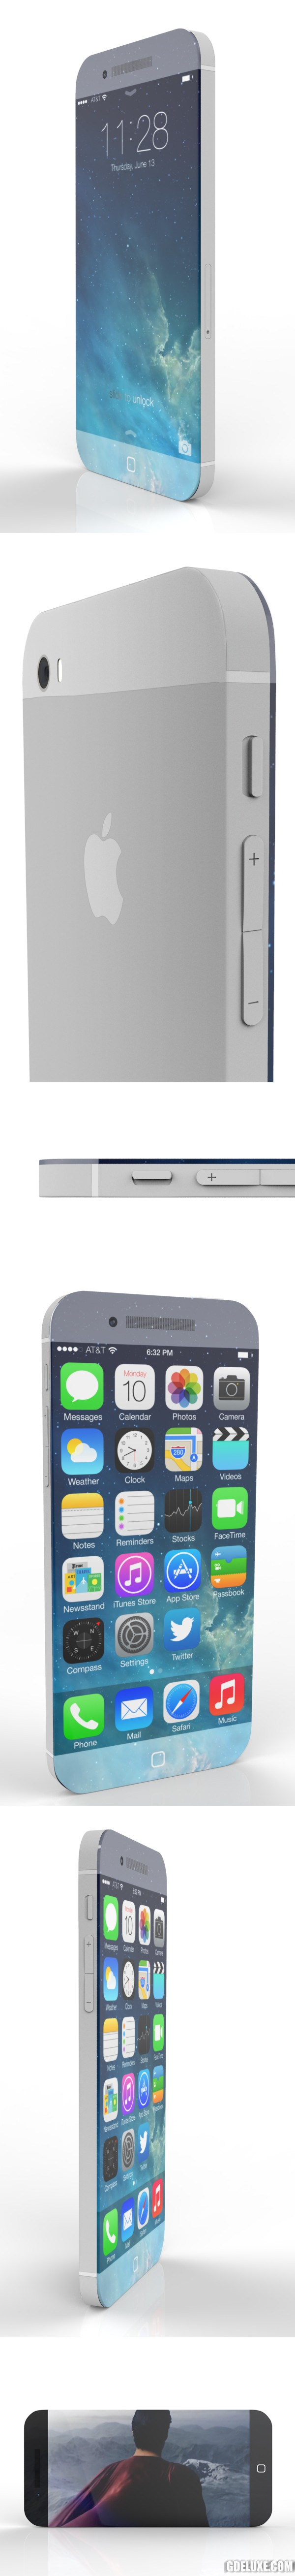 iPhone-6-Price.png